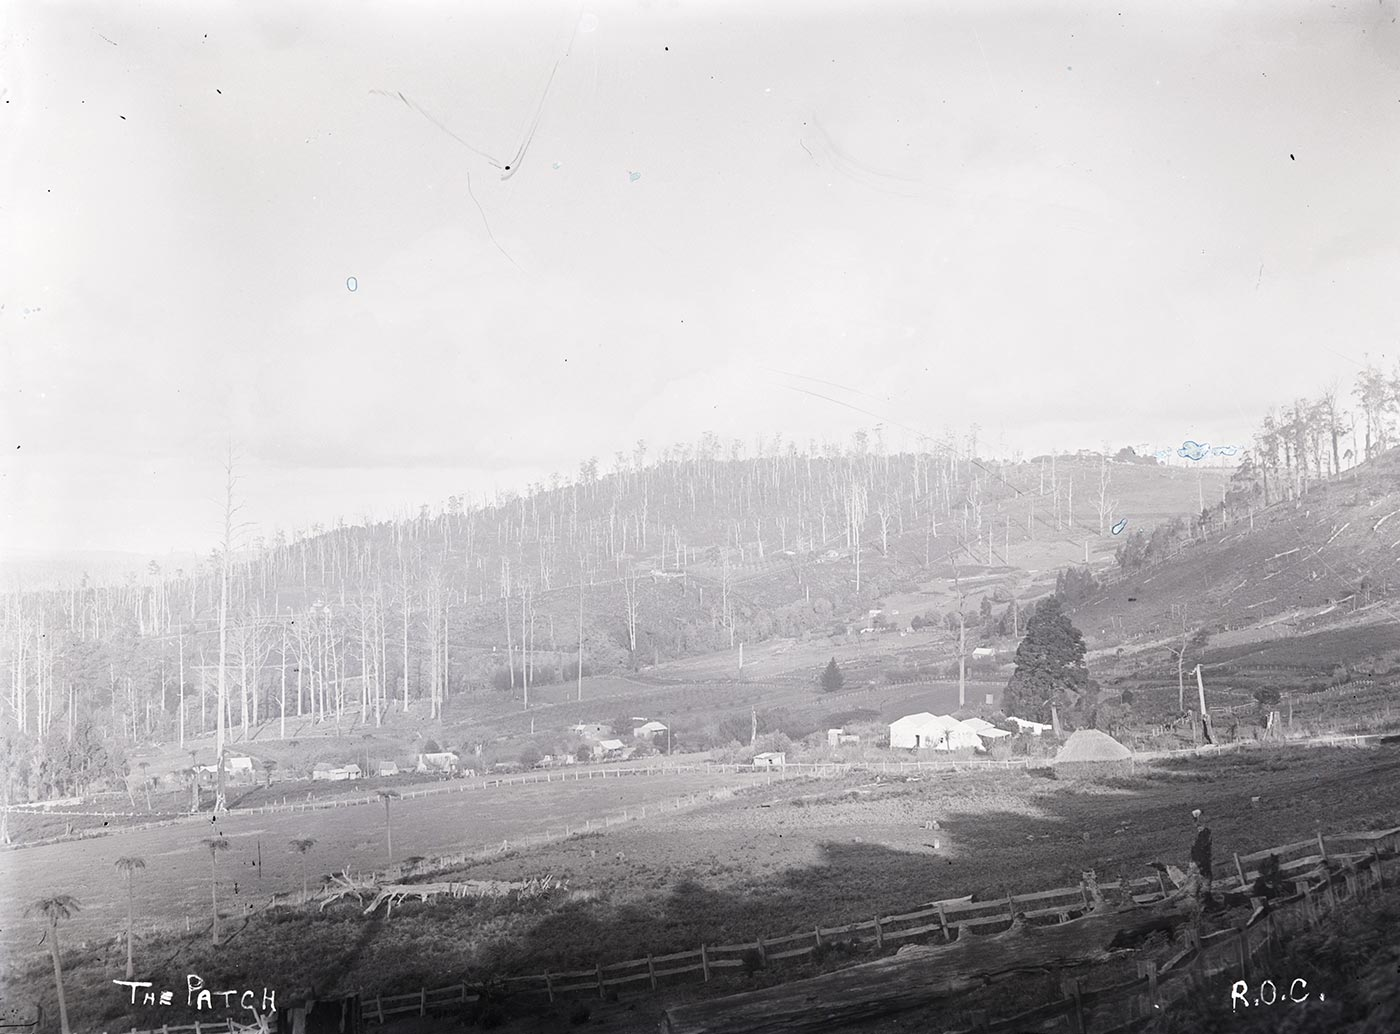 A photographic glass plate negative showing a house in the background of hills and trees. Two rows of wooden fences are in the foreground. Handwritten text on the bottom of the glass negative reads 'THE PATCH' and 'R.O.C.' on the right. - click to view larger image